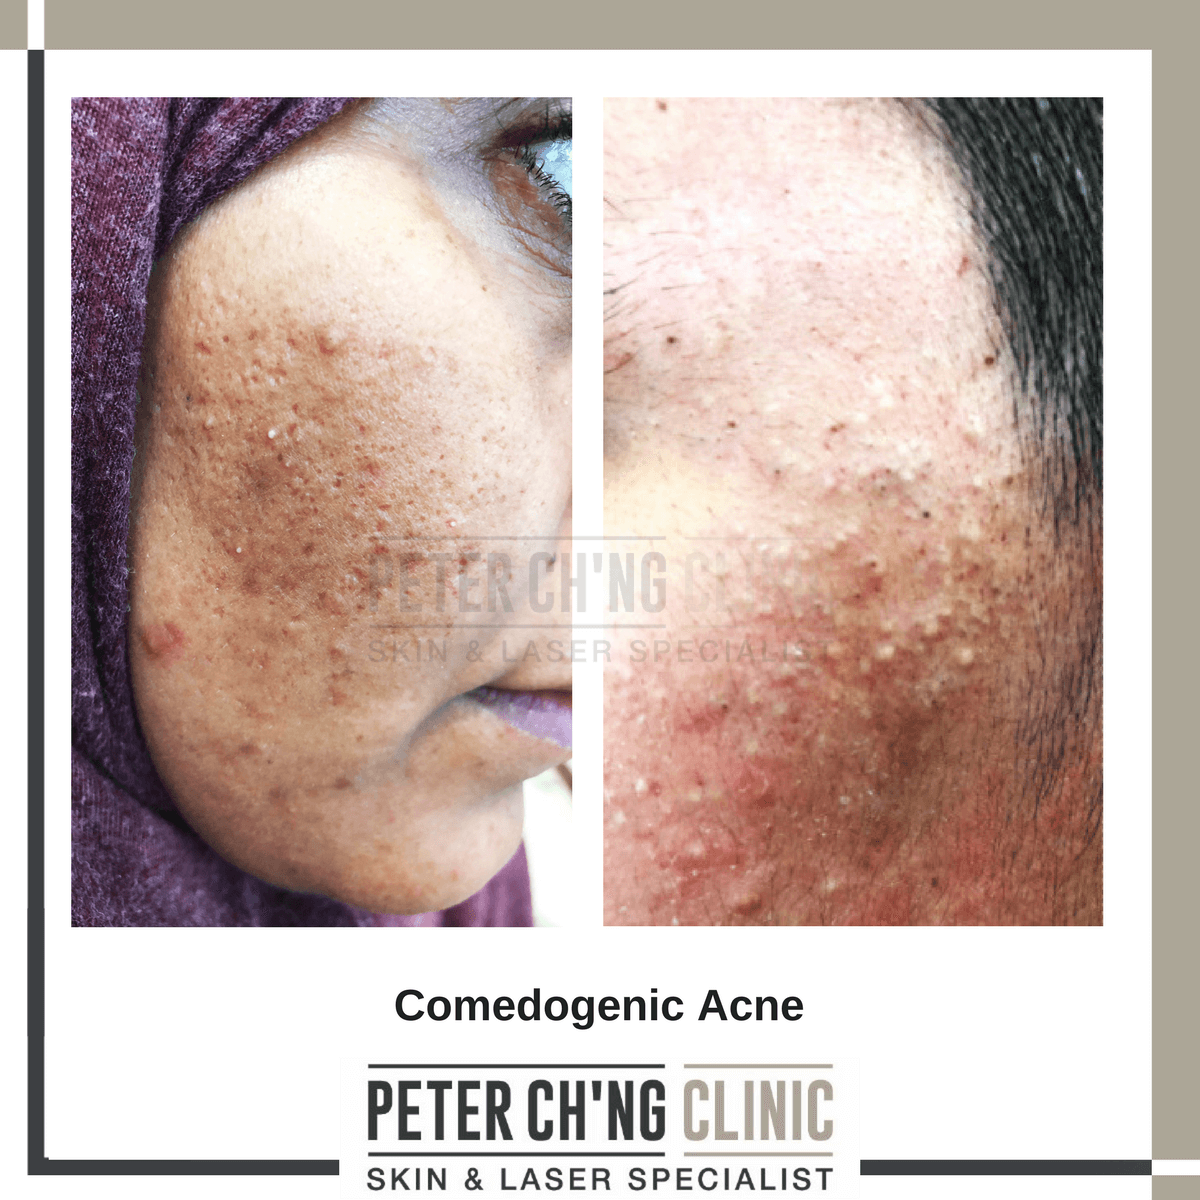 Comedogenic acne